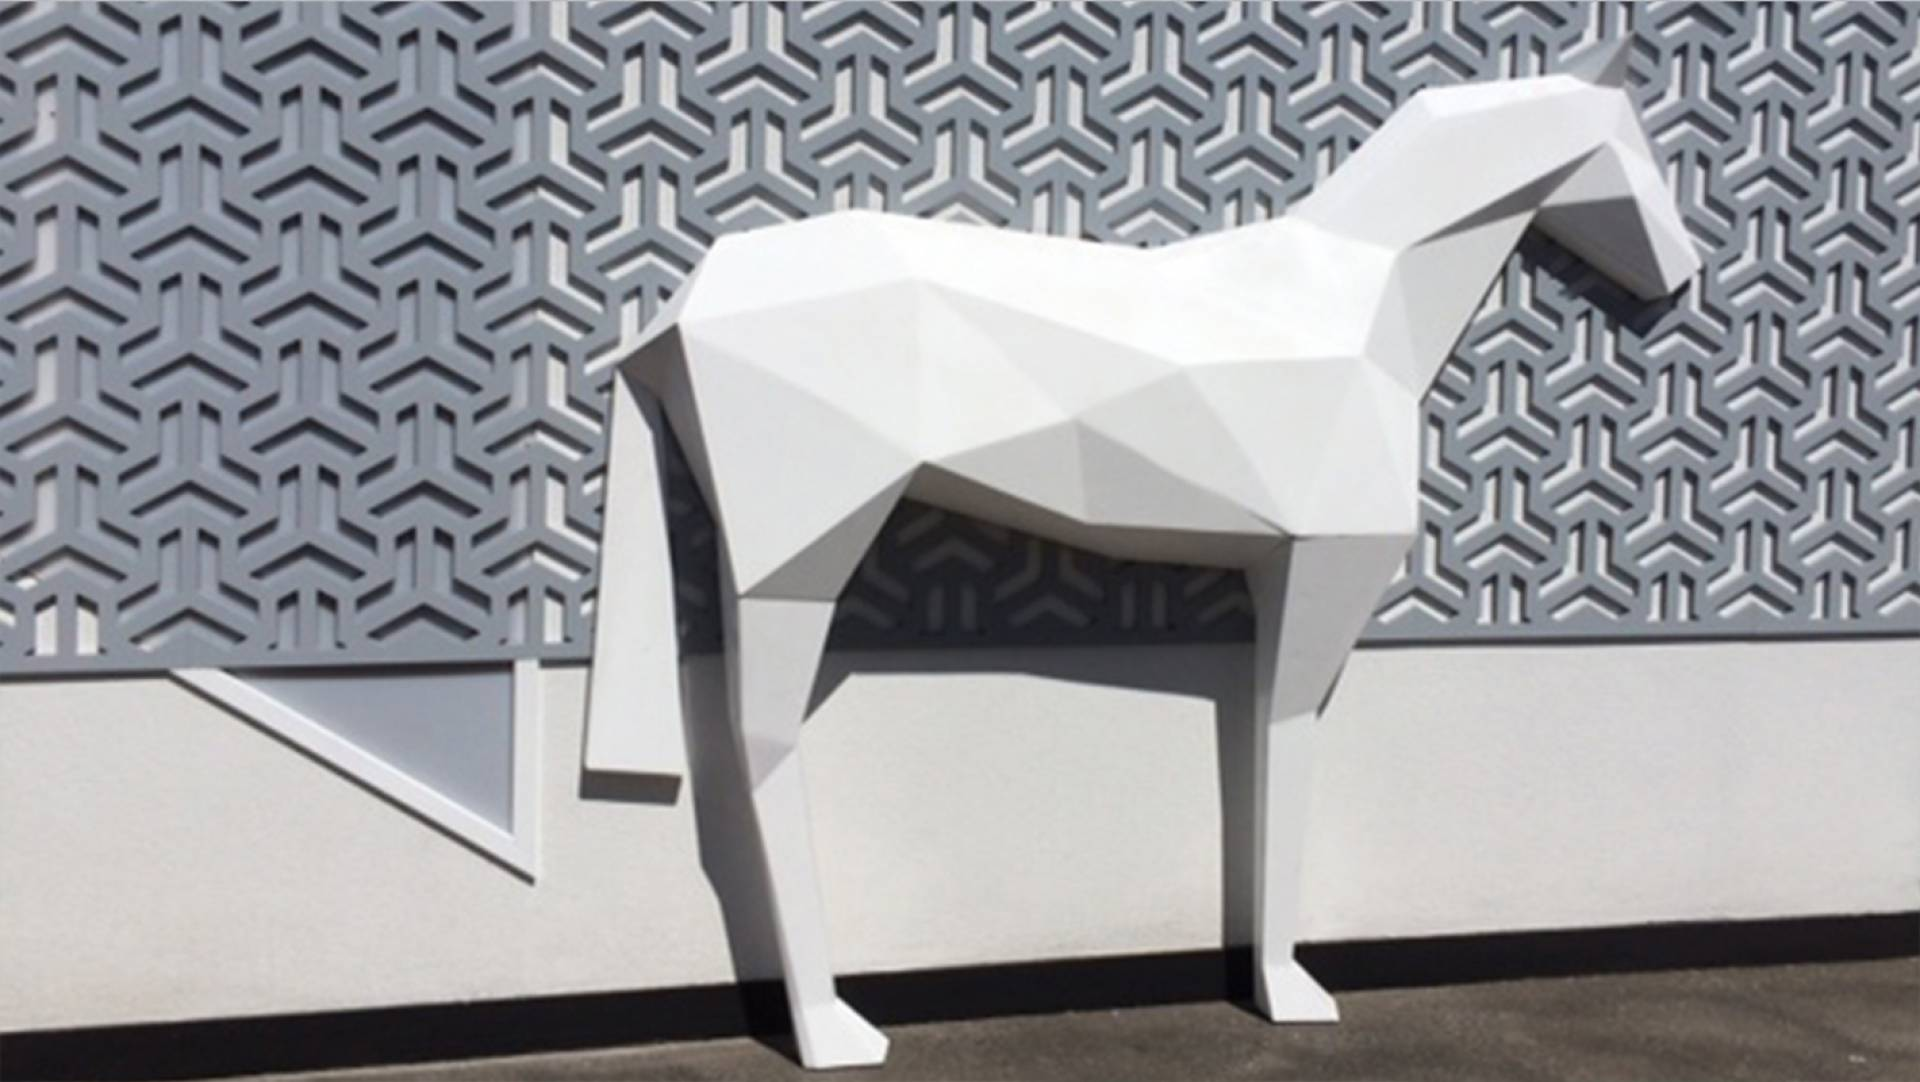 Melbourne Cup Gets a Sculptural magic from Studio Equator and the Super talented Hector